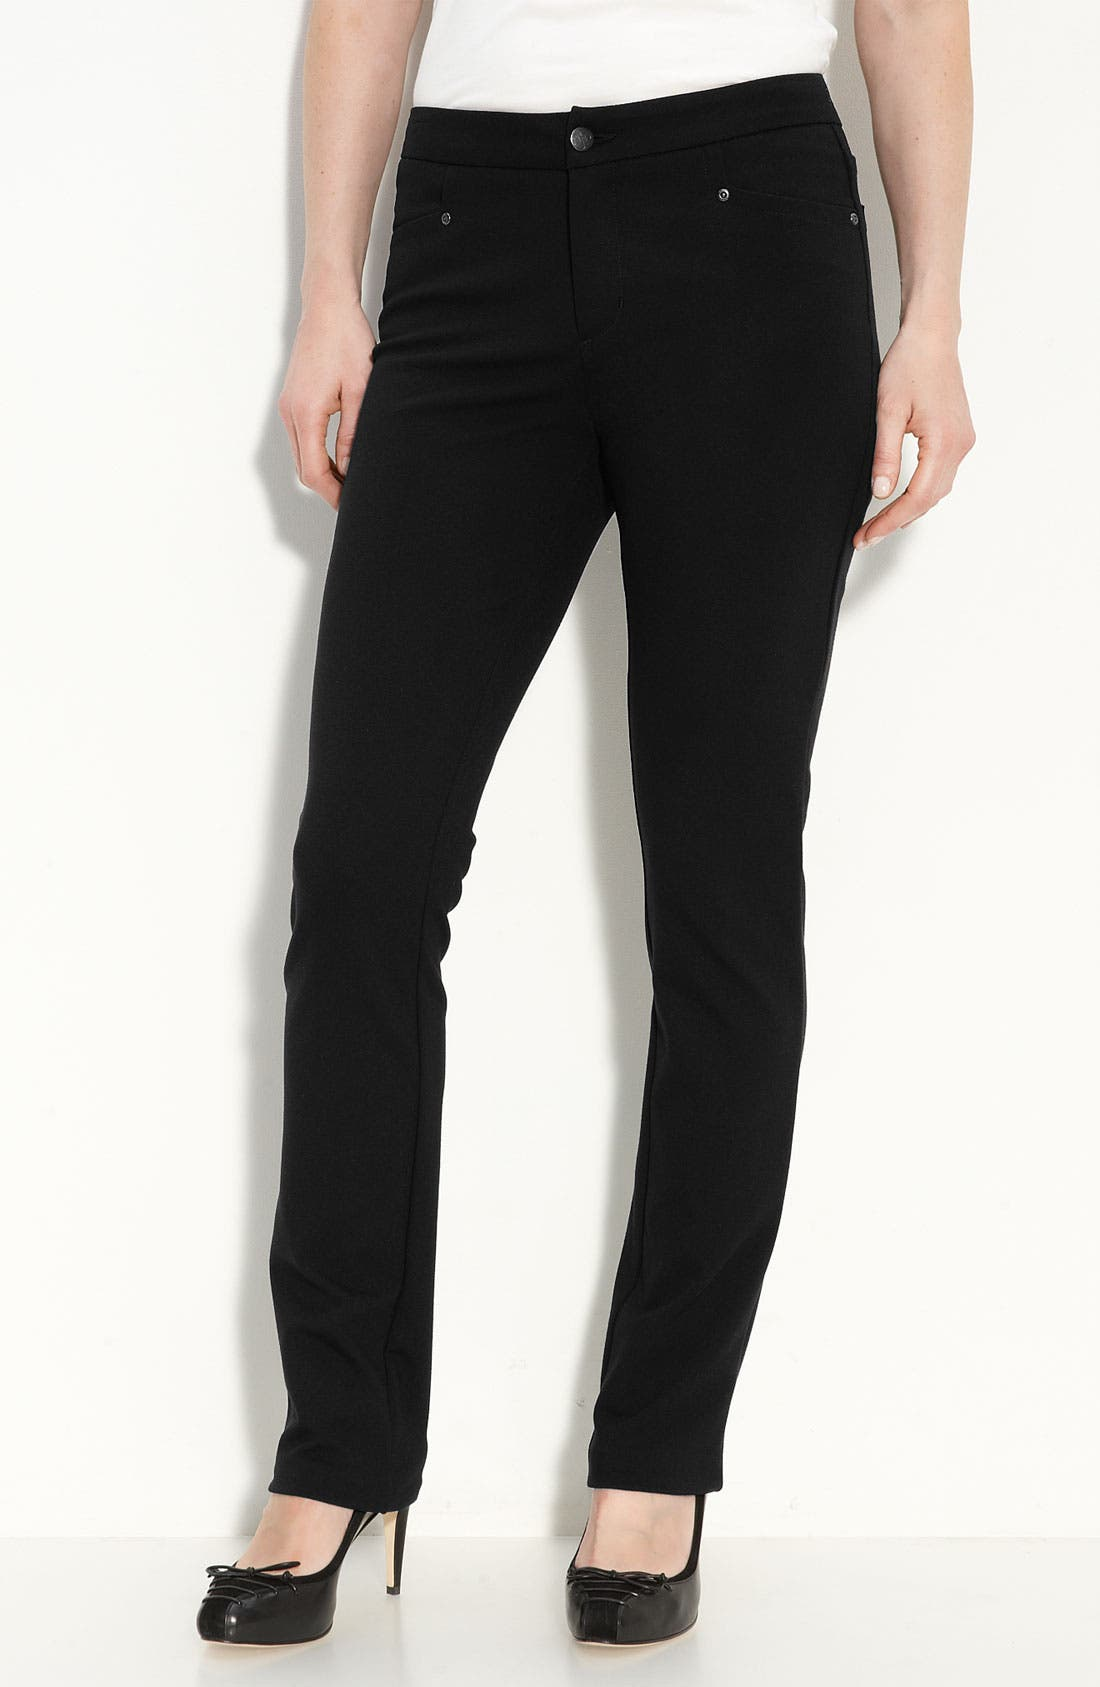 Alternate Image 1 Selected - NYDJ 'Samantha' Stretch Ponte Knit Pants